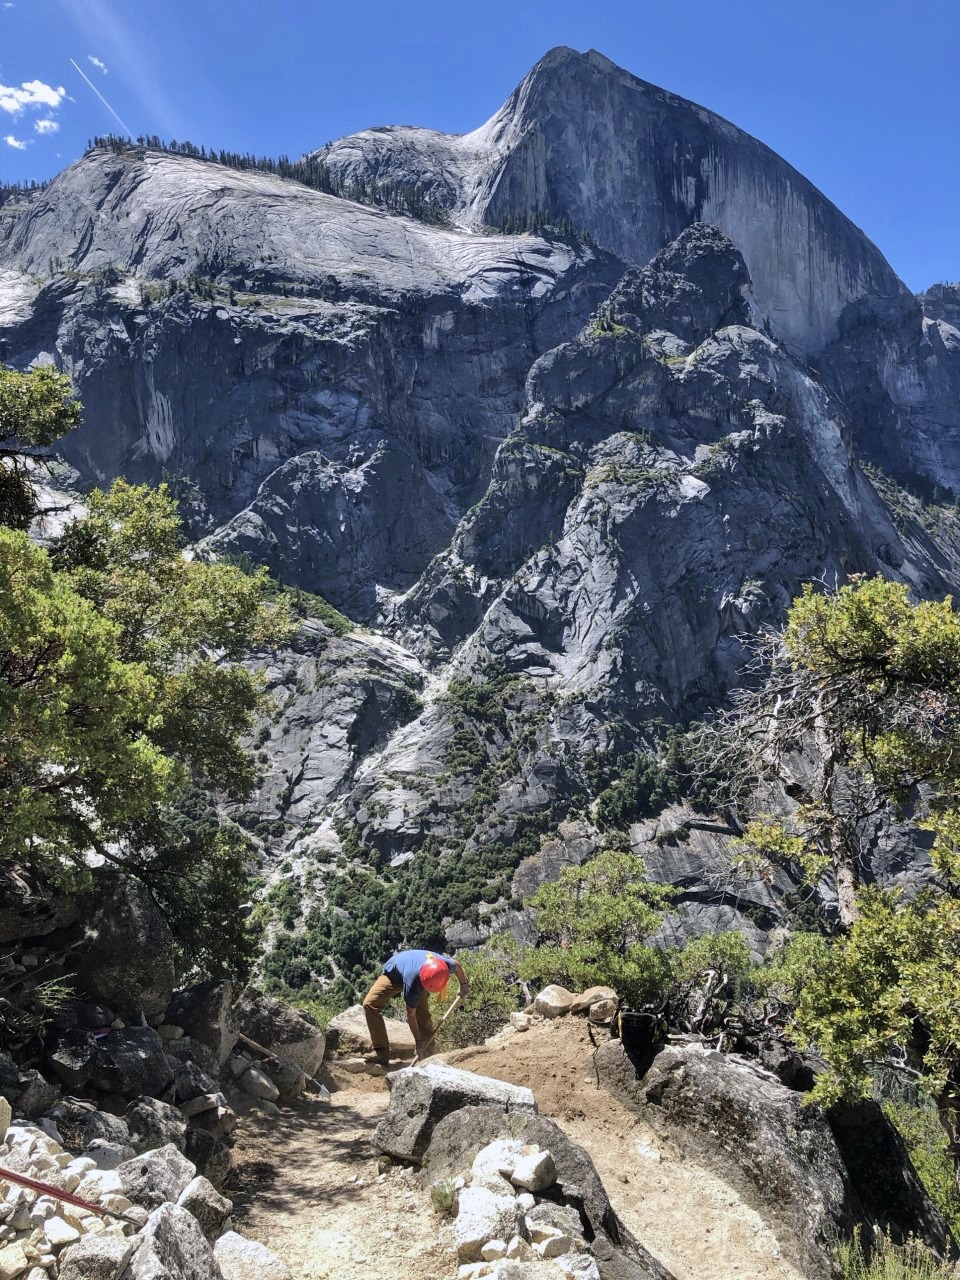 Photo of a worker on the Snow Creek Trail in Yosemite, with Half Dome in the background.